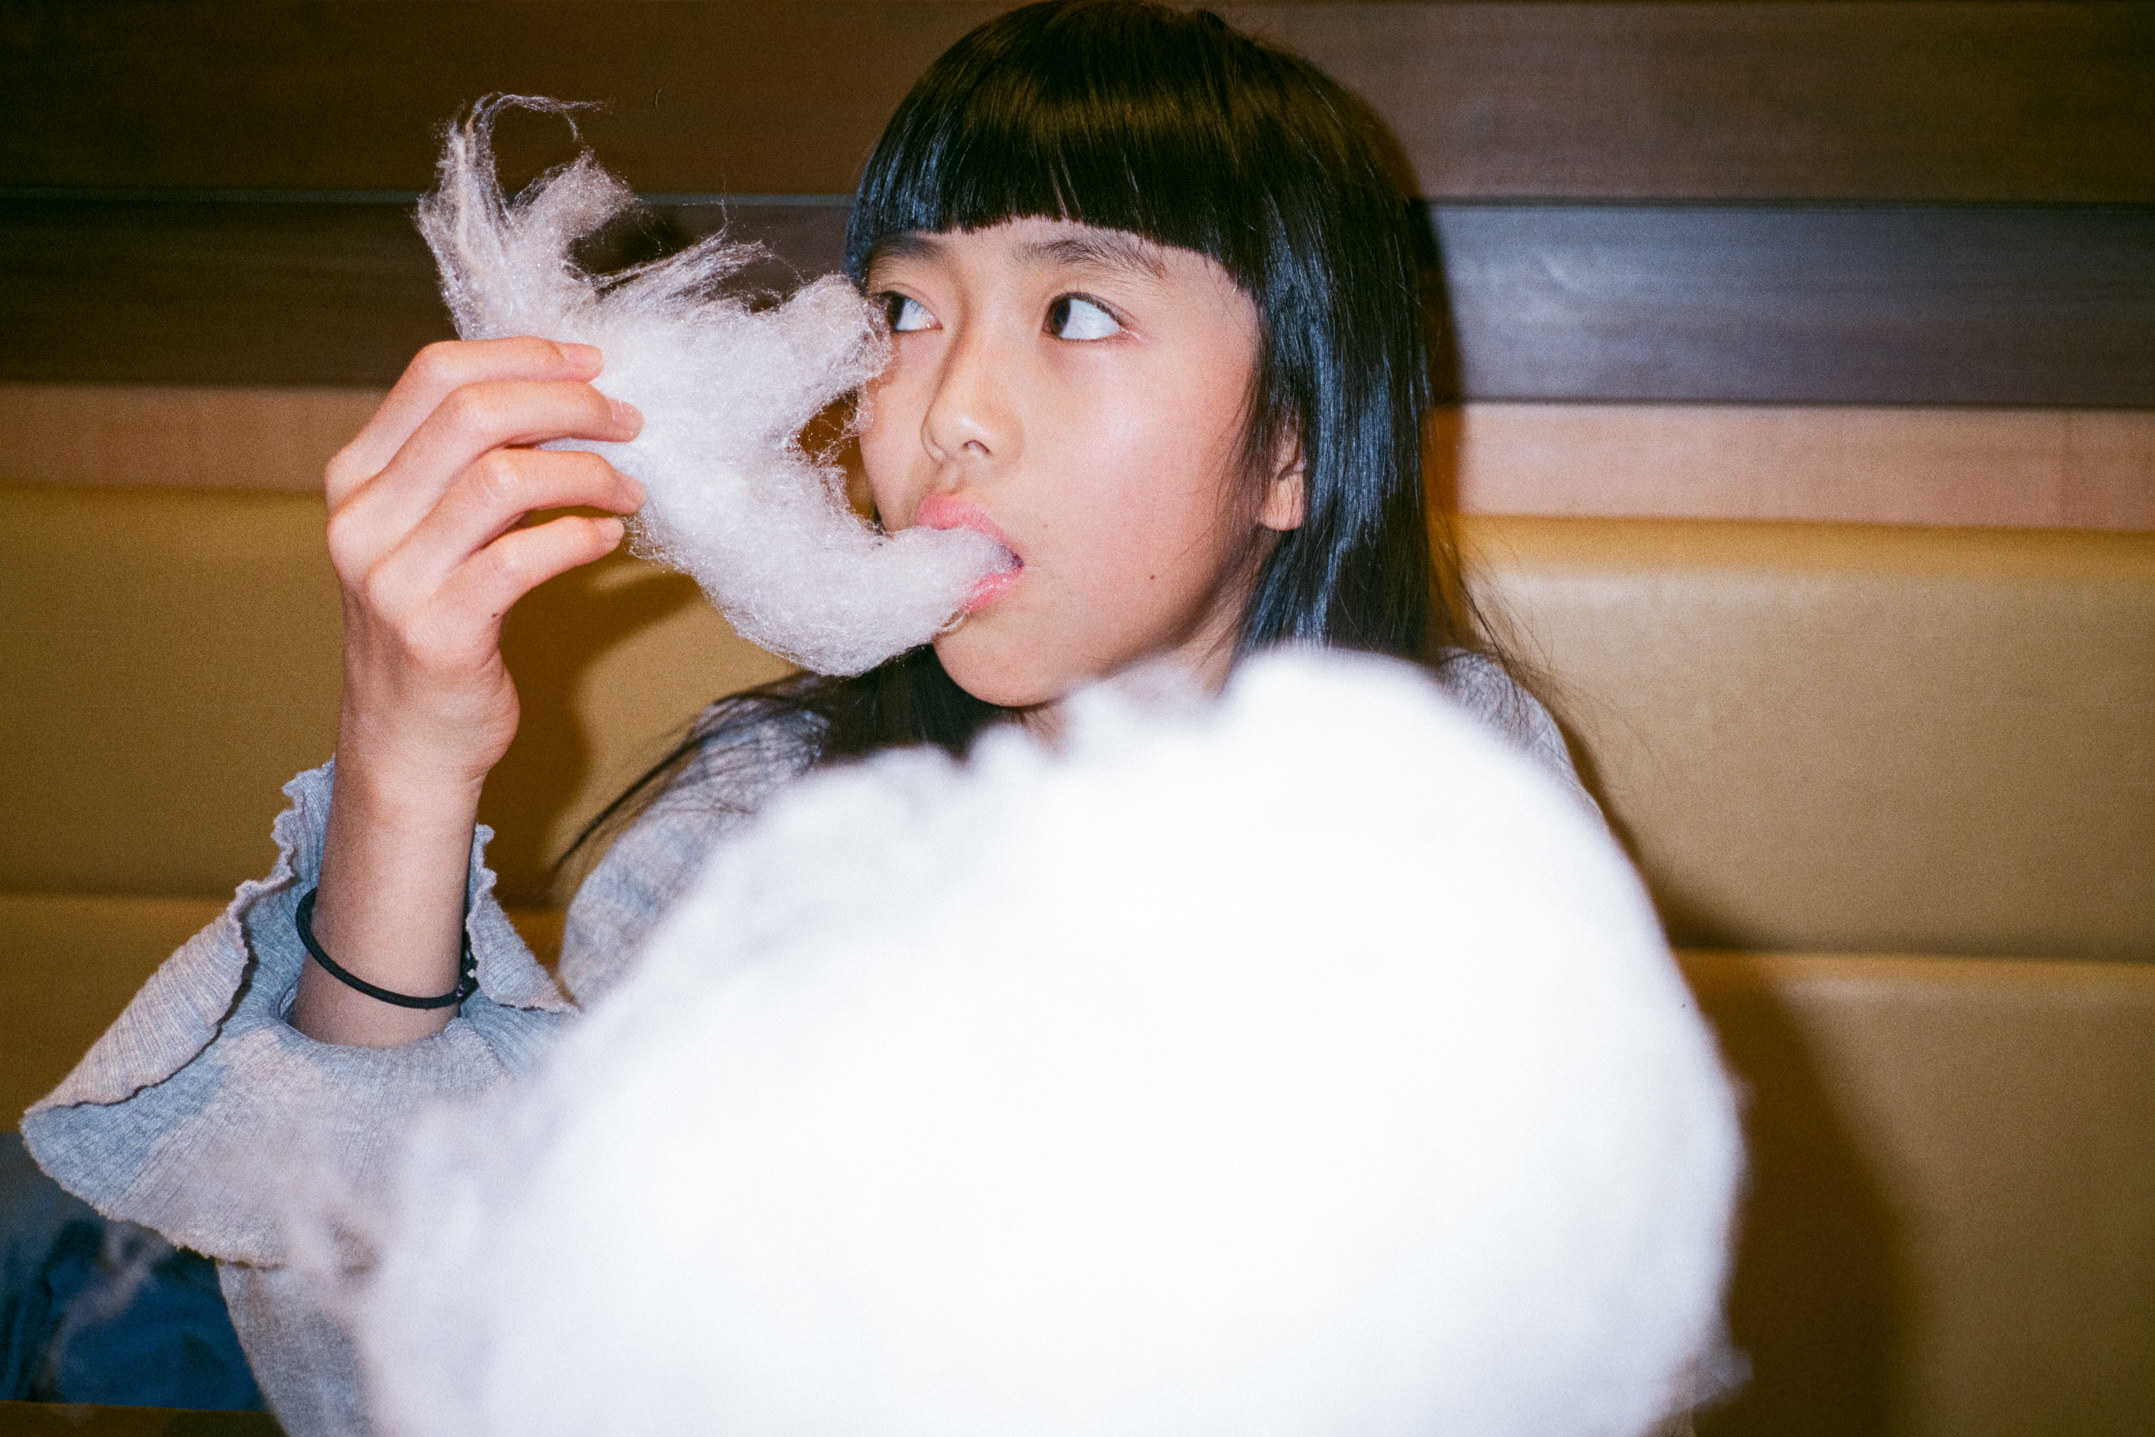 The photographer's daughter eating cotton candy